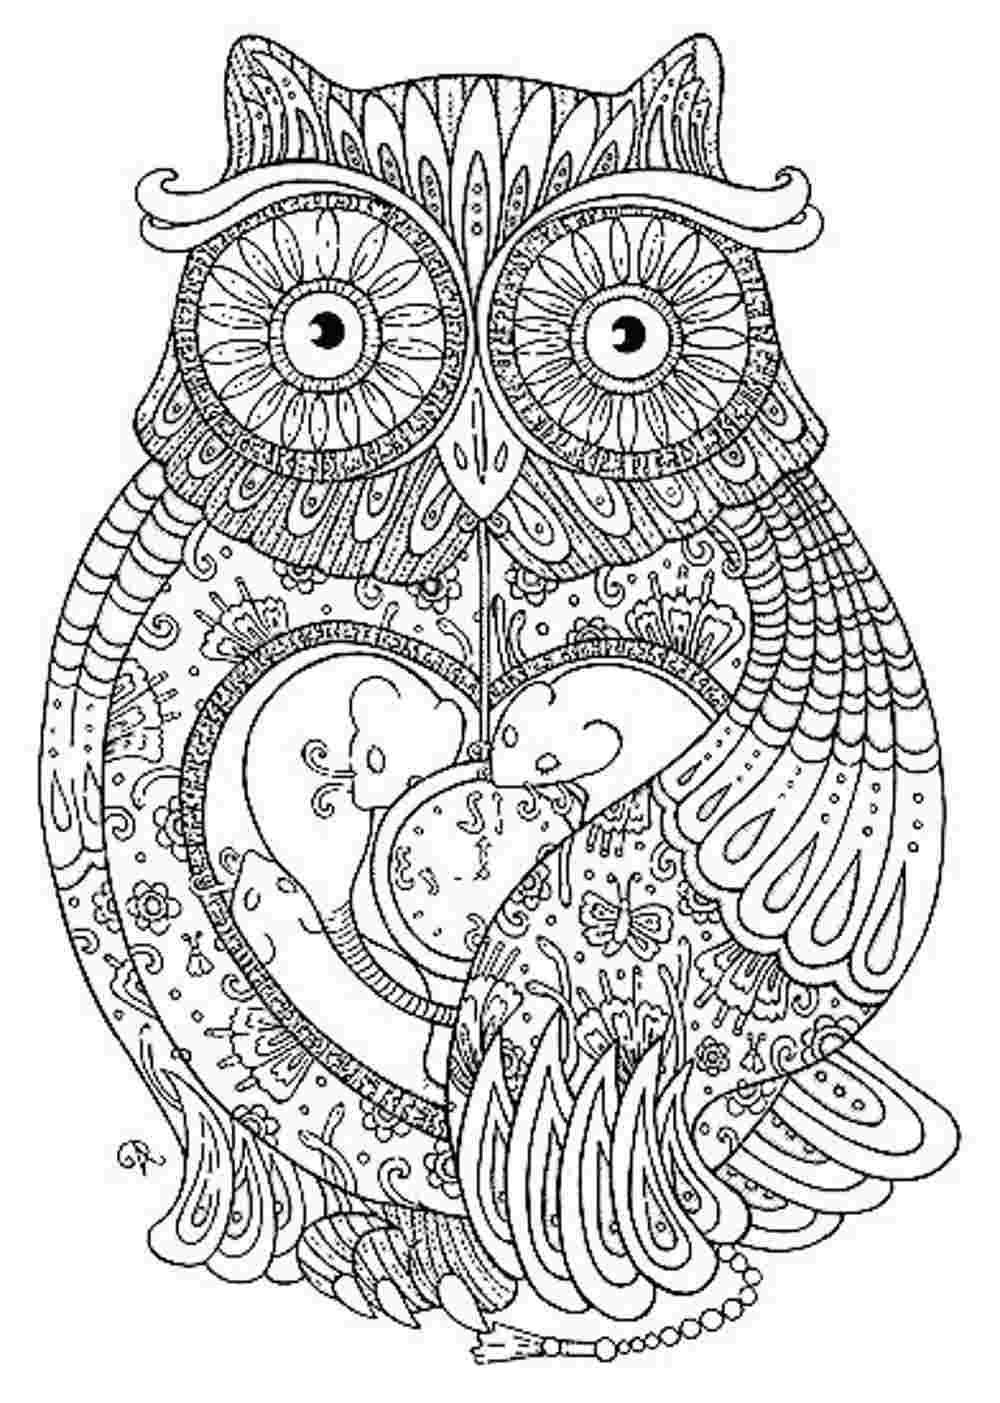 owl-coloring-pages-for-adults | Owl coloring pagesDetailed Mandala Coloring Pages For Adults